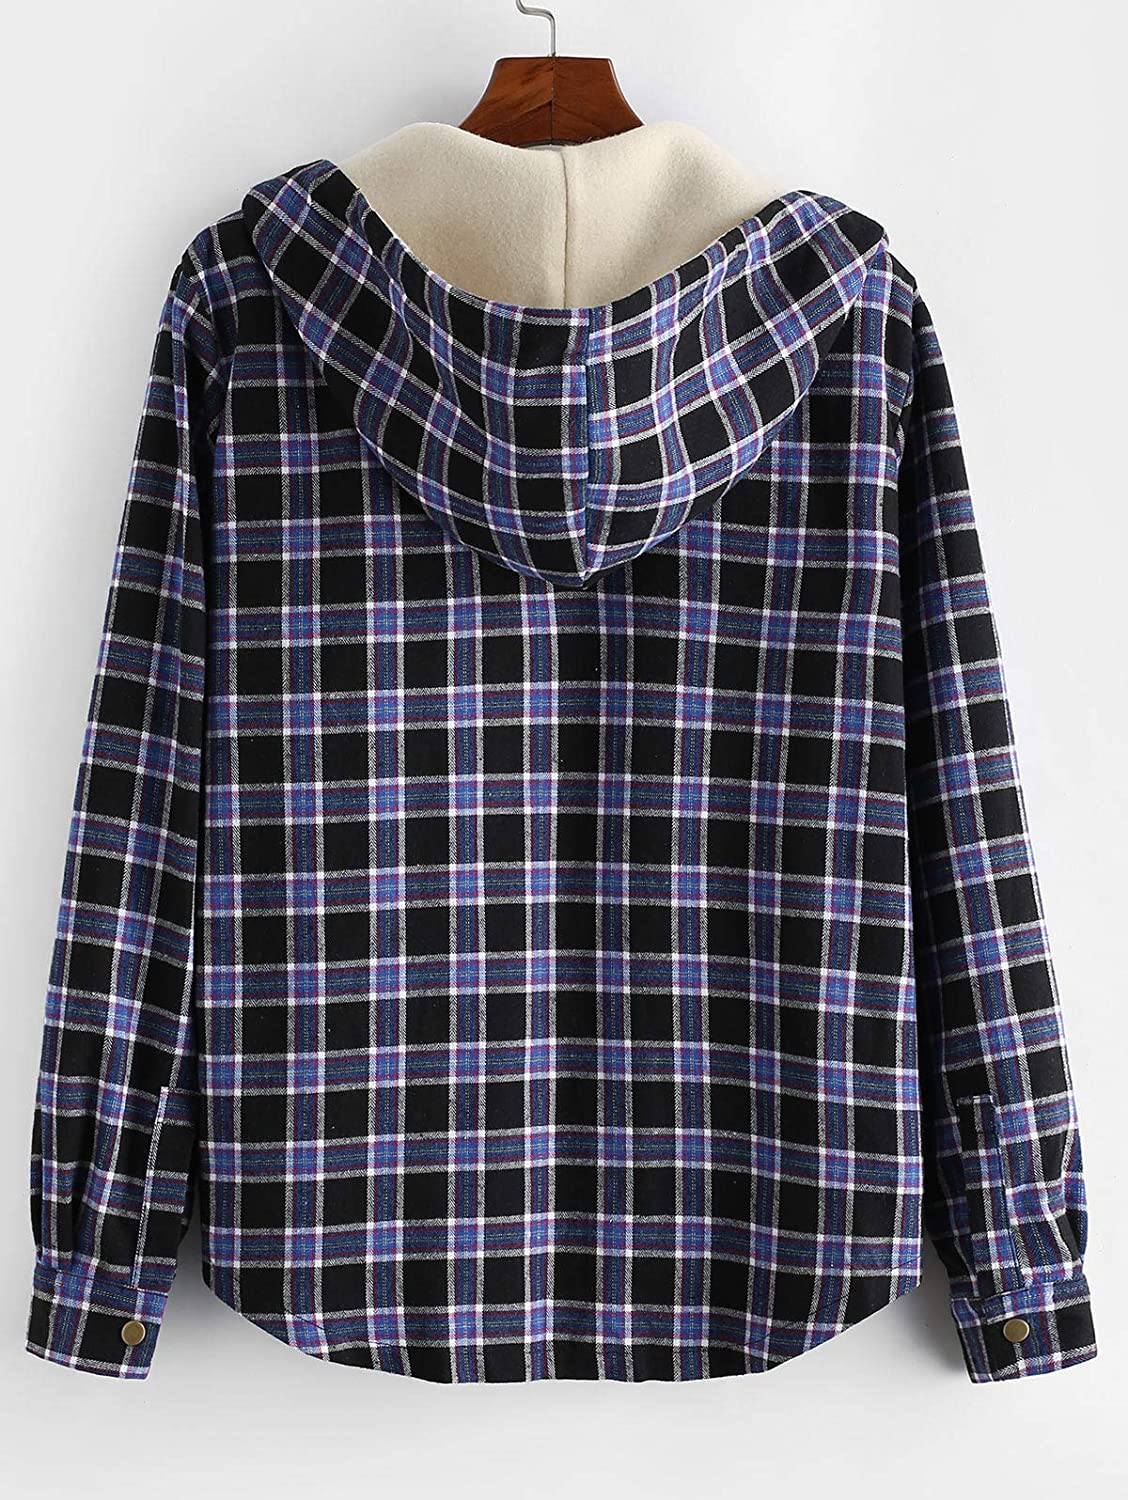 ZAFUL Mens Plaid Flannel Lined Hooded Jacket Long Sleeve Unisex Fuzzy Shirt Coat Tops